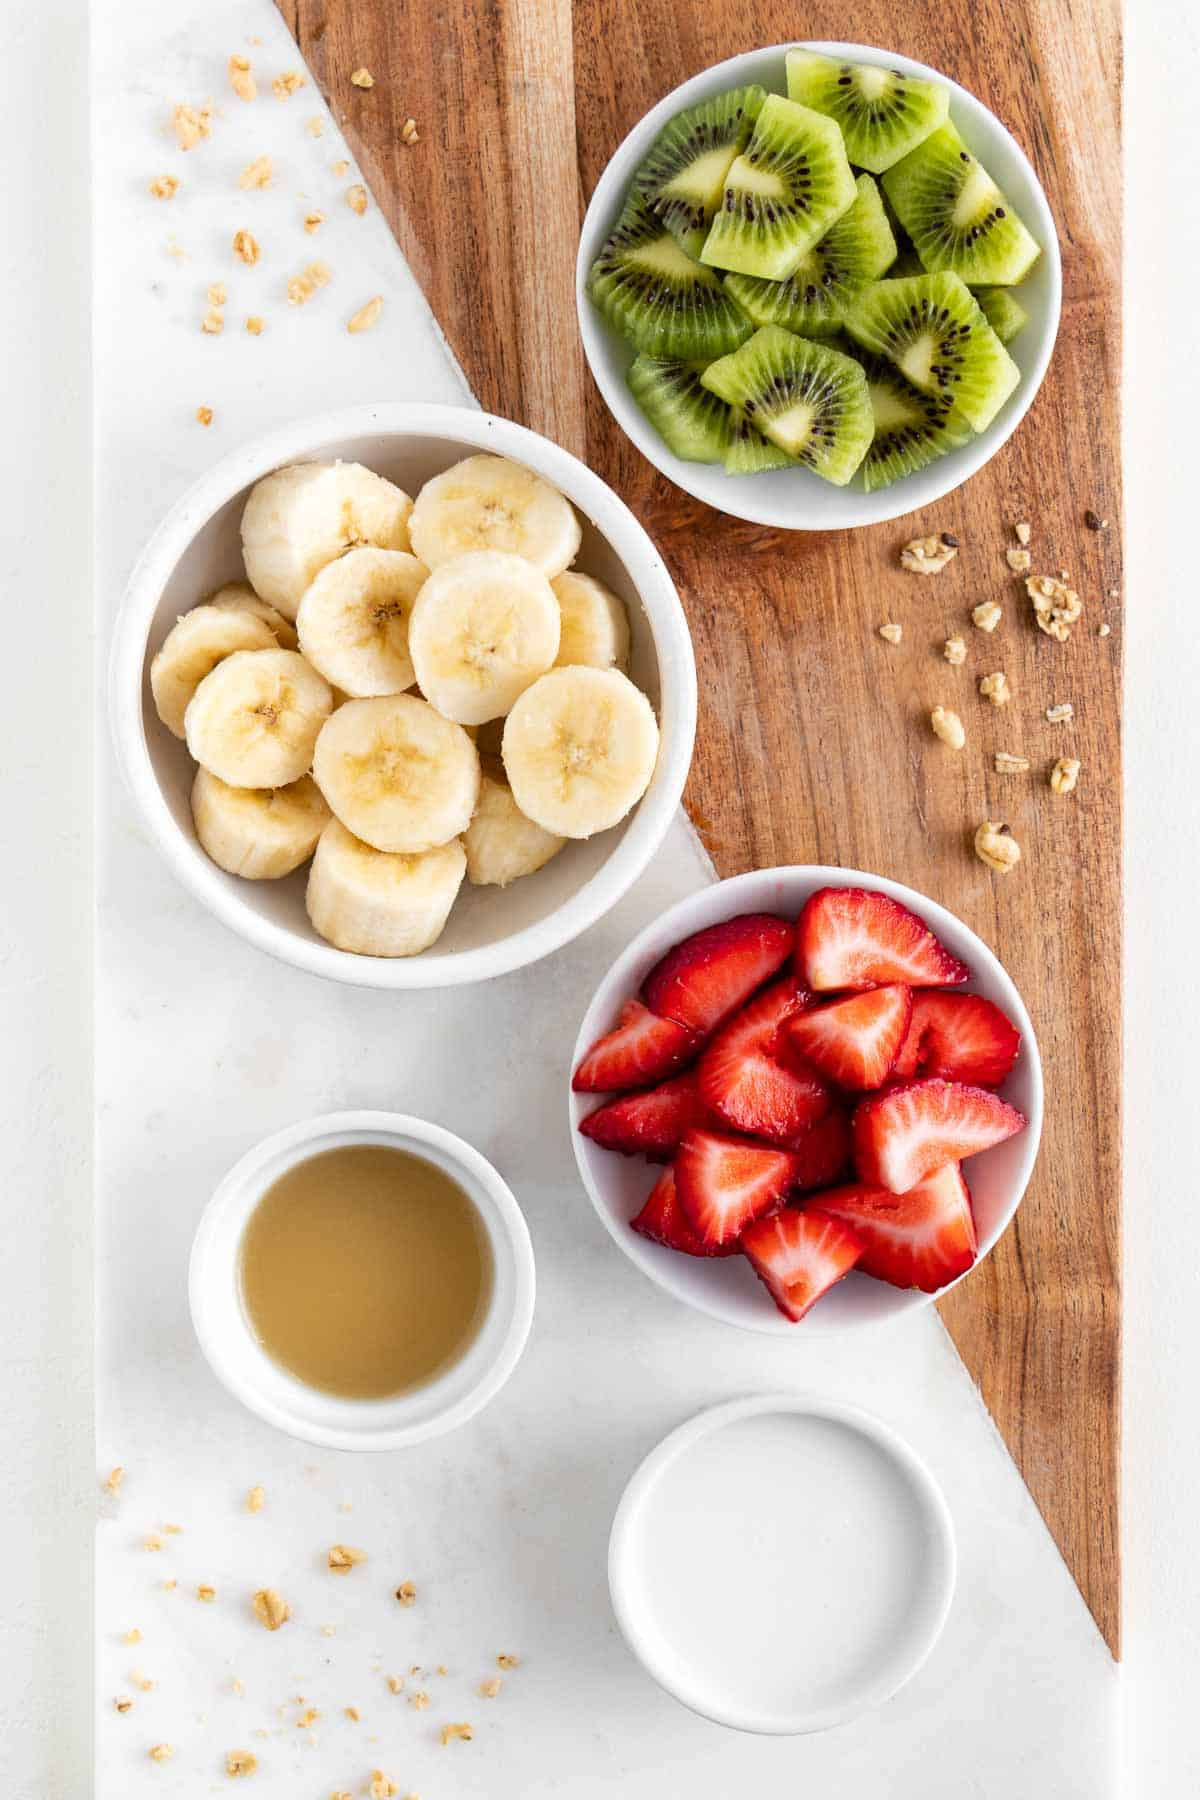 a marble and wood cutting board topped with bowls of banana, kiwi fruit, berries, lime juice, and almond milk